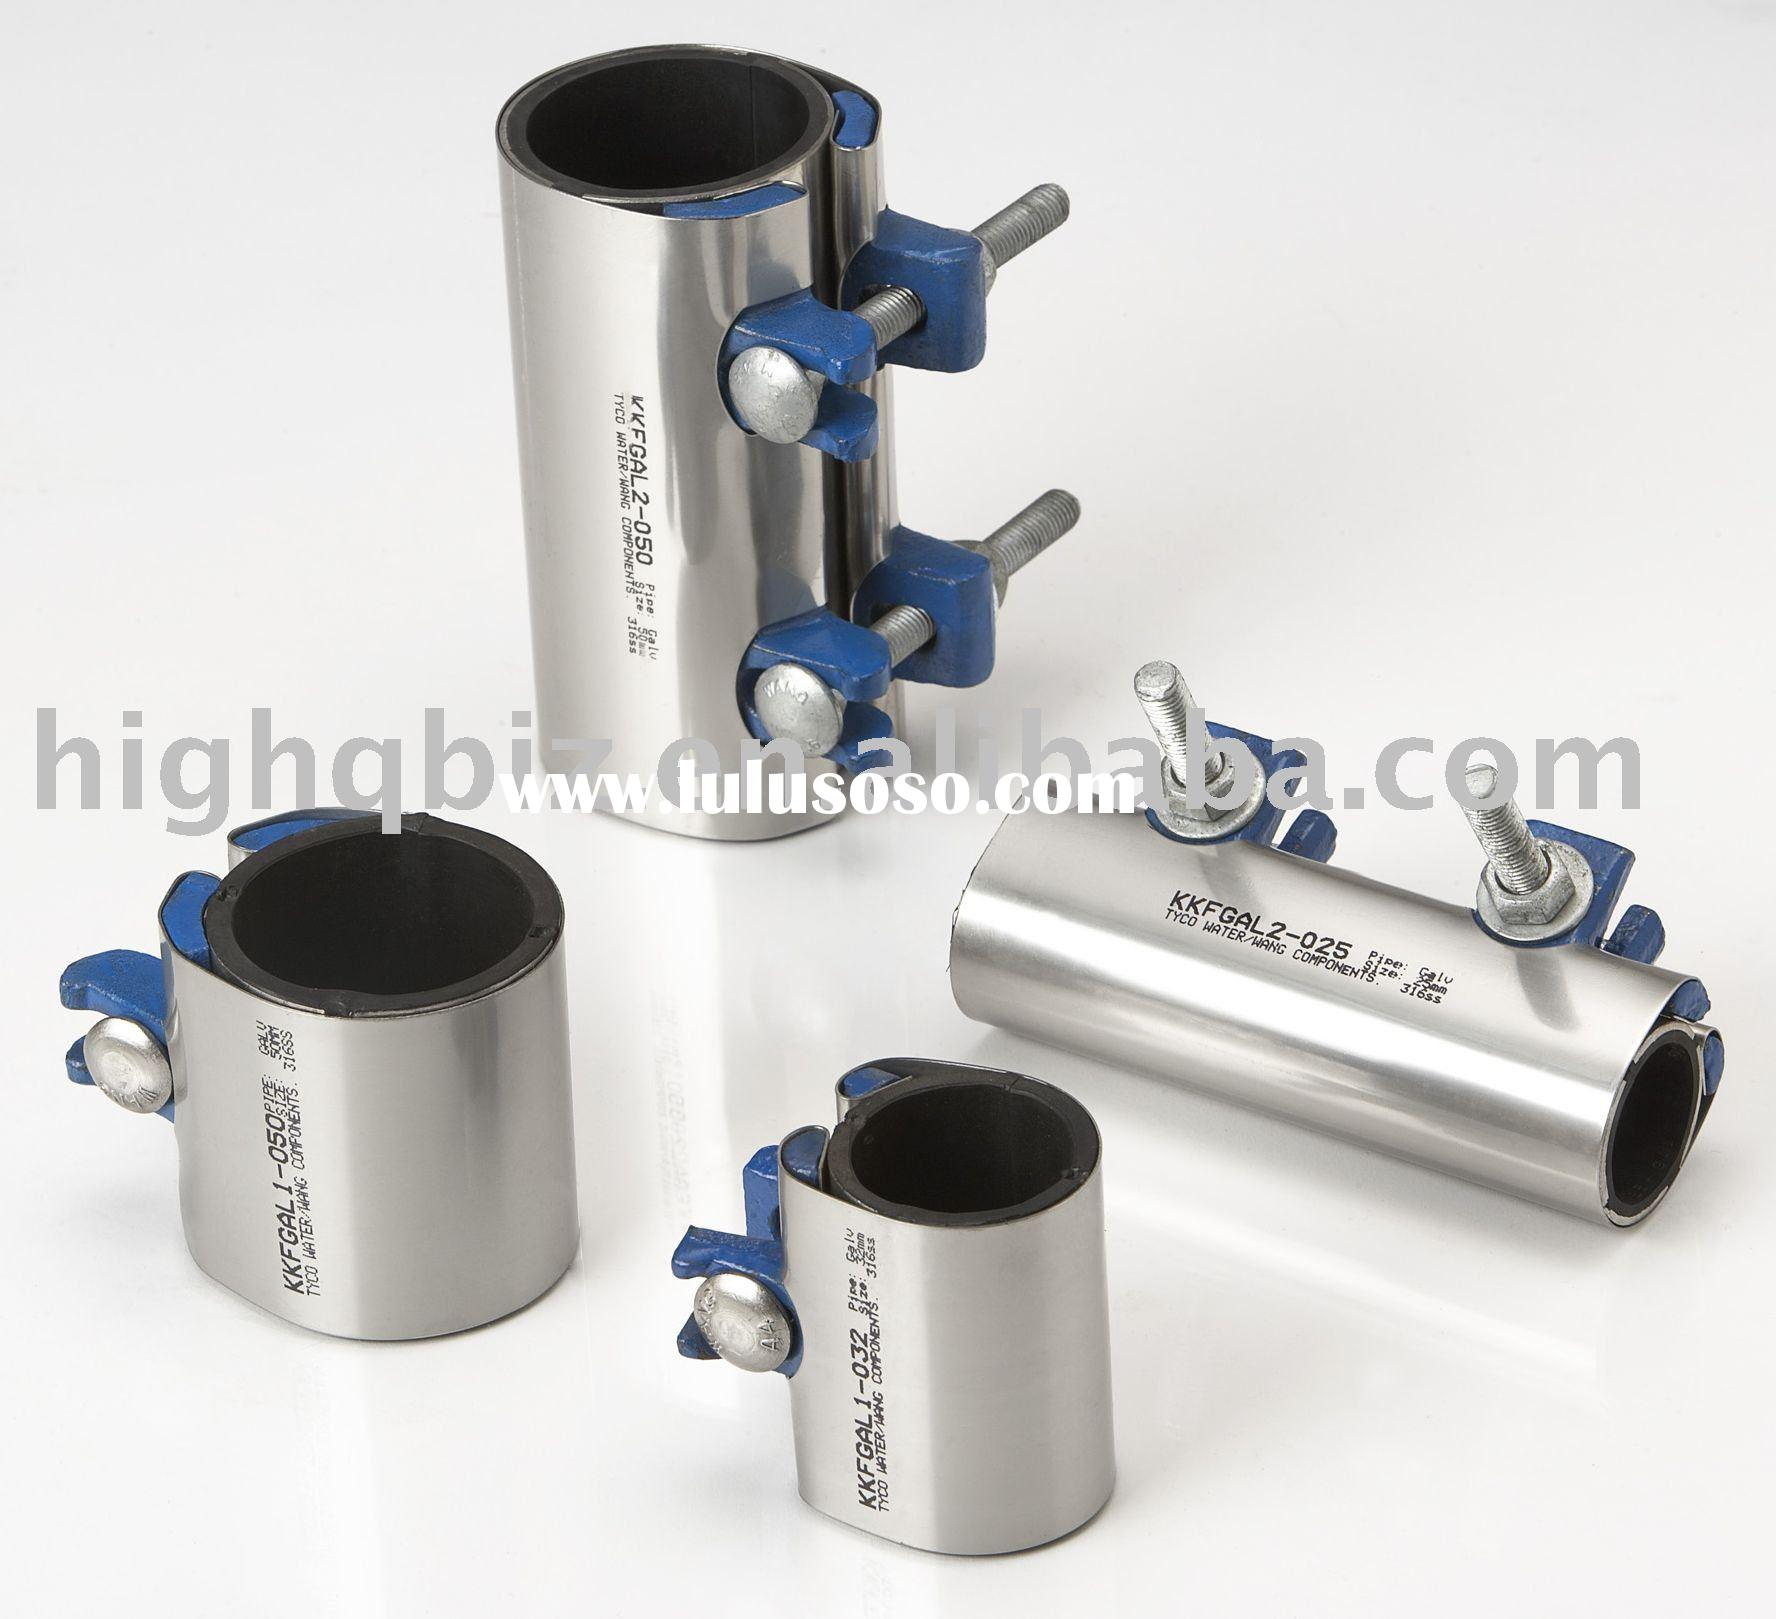 Pipe repair clamp manufacturers in